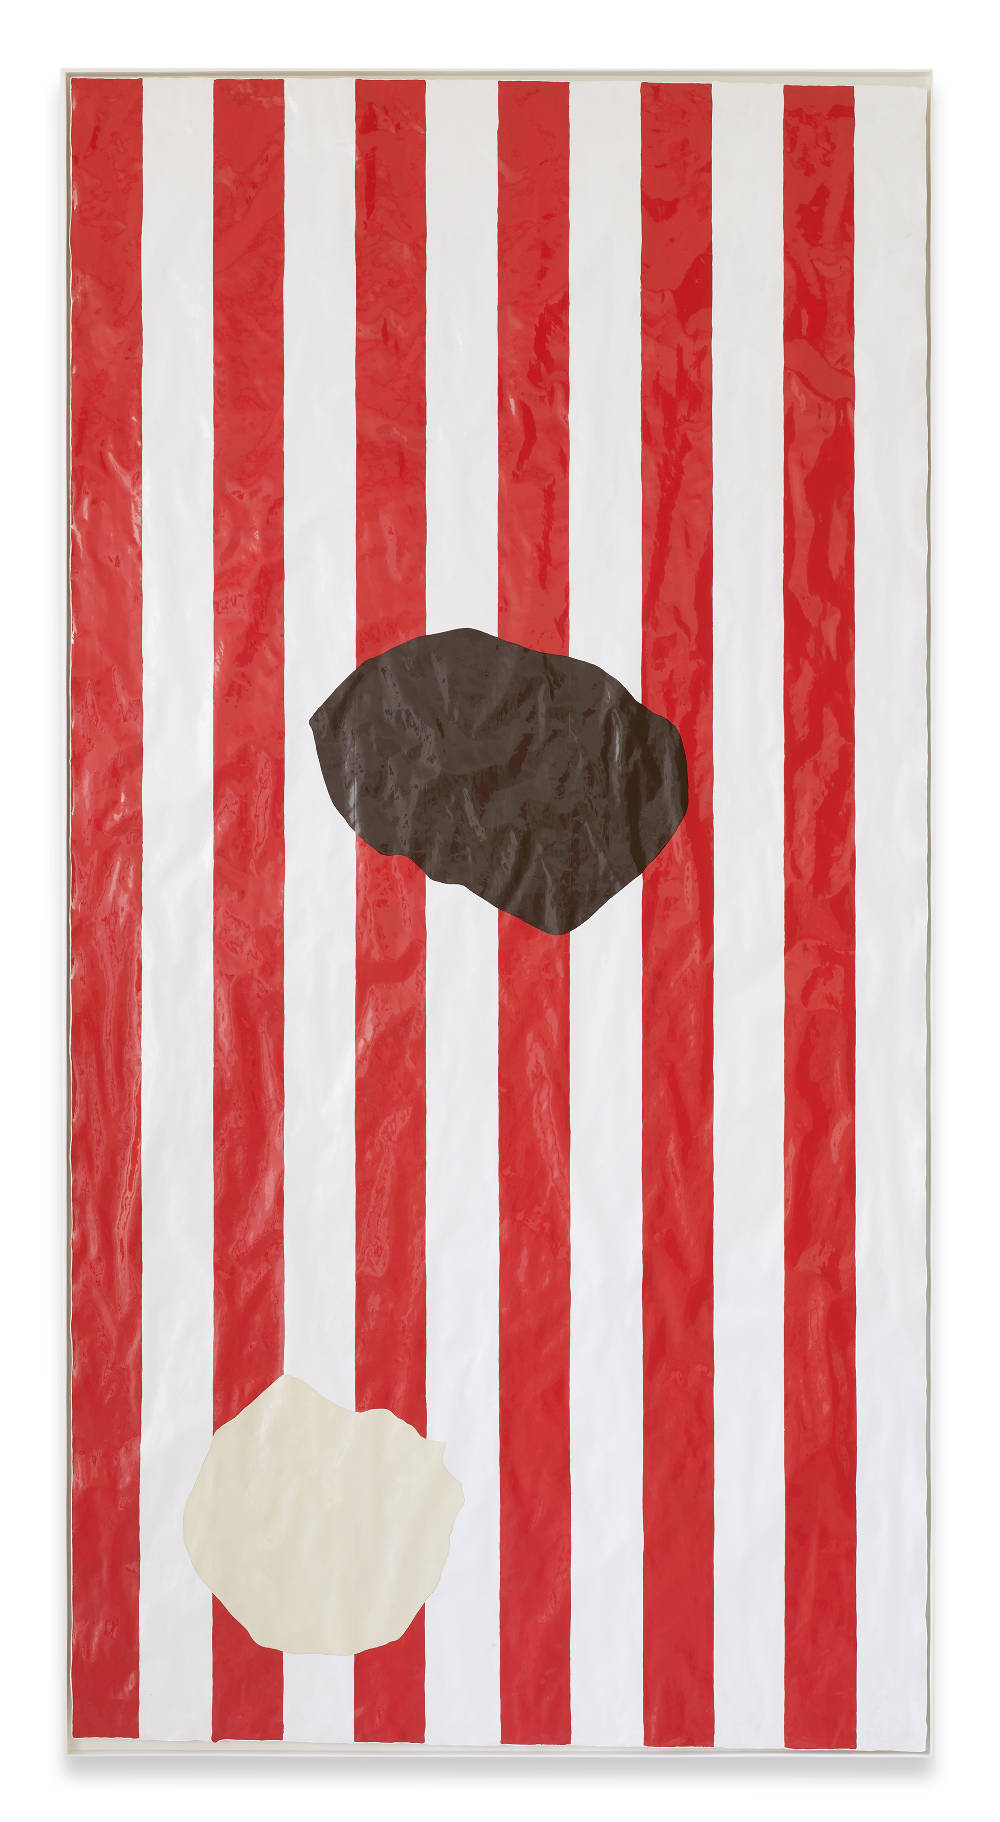 Gary Hume, Cheap Sweets, 2016. Gloss paint on paper 206,5 x 106 cm / 81 1/4 x 41 3/4 inches © Gary Hume / DACS, London, 2017. Courtesy of the artist, Sprüth Magers and Matthew Marks Gallery